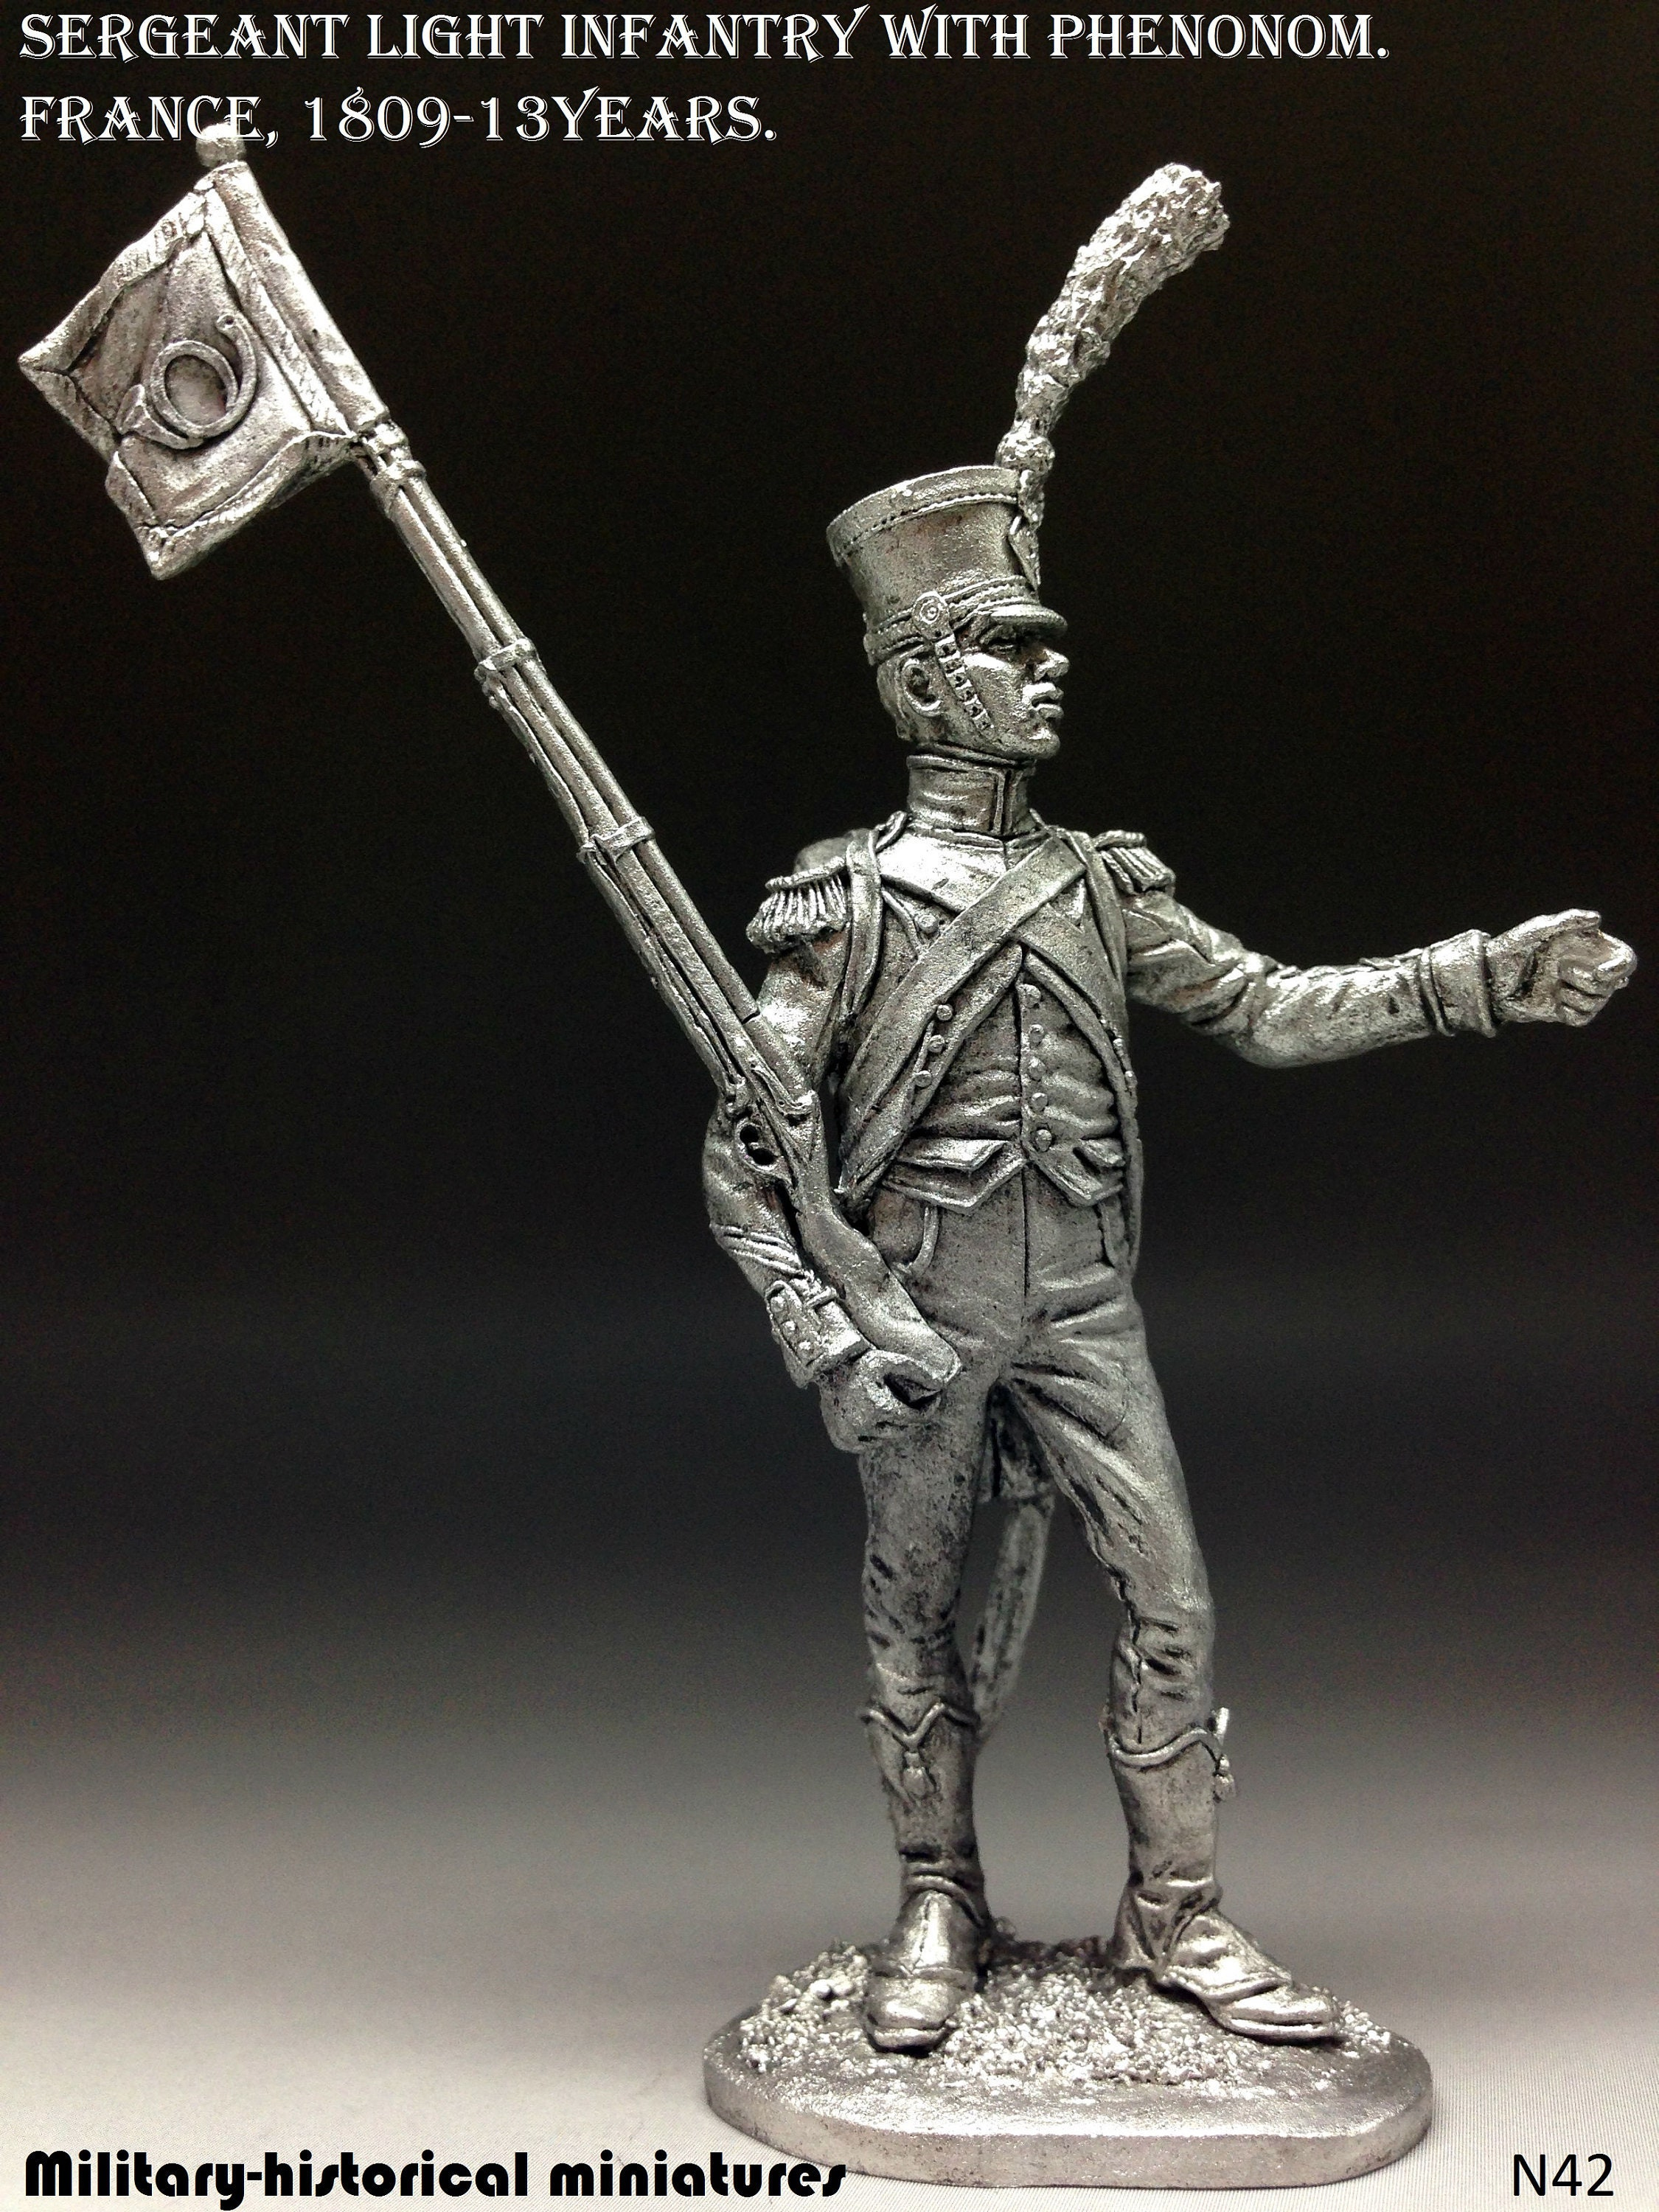 France Tin Toy Soldiers Metal Sculpture Miniature Figure Collection 54mm Sergeant of light infantry scale 1//32 N42